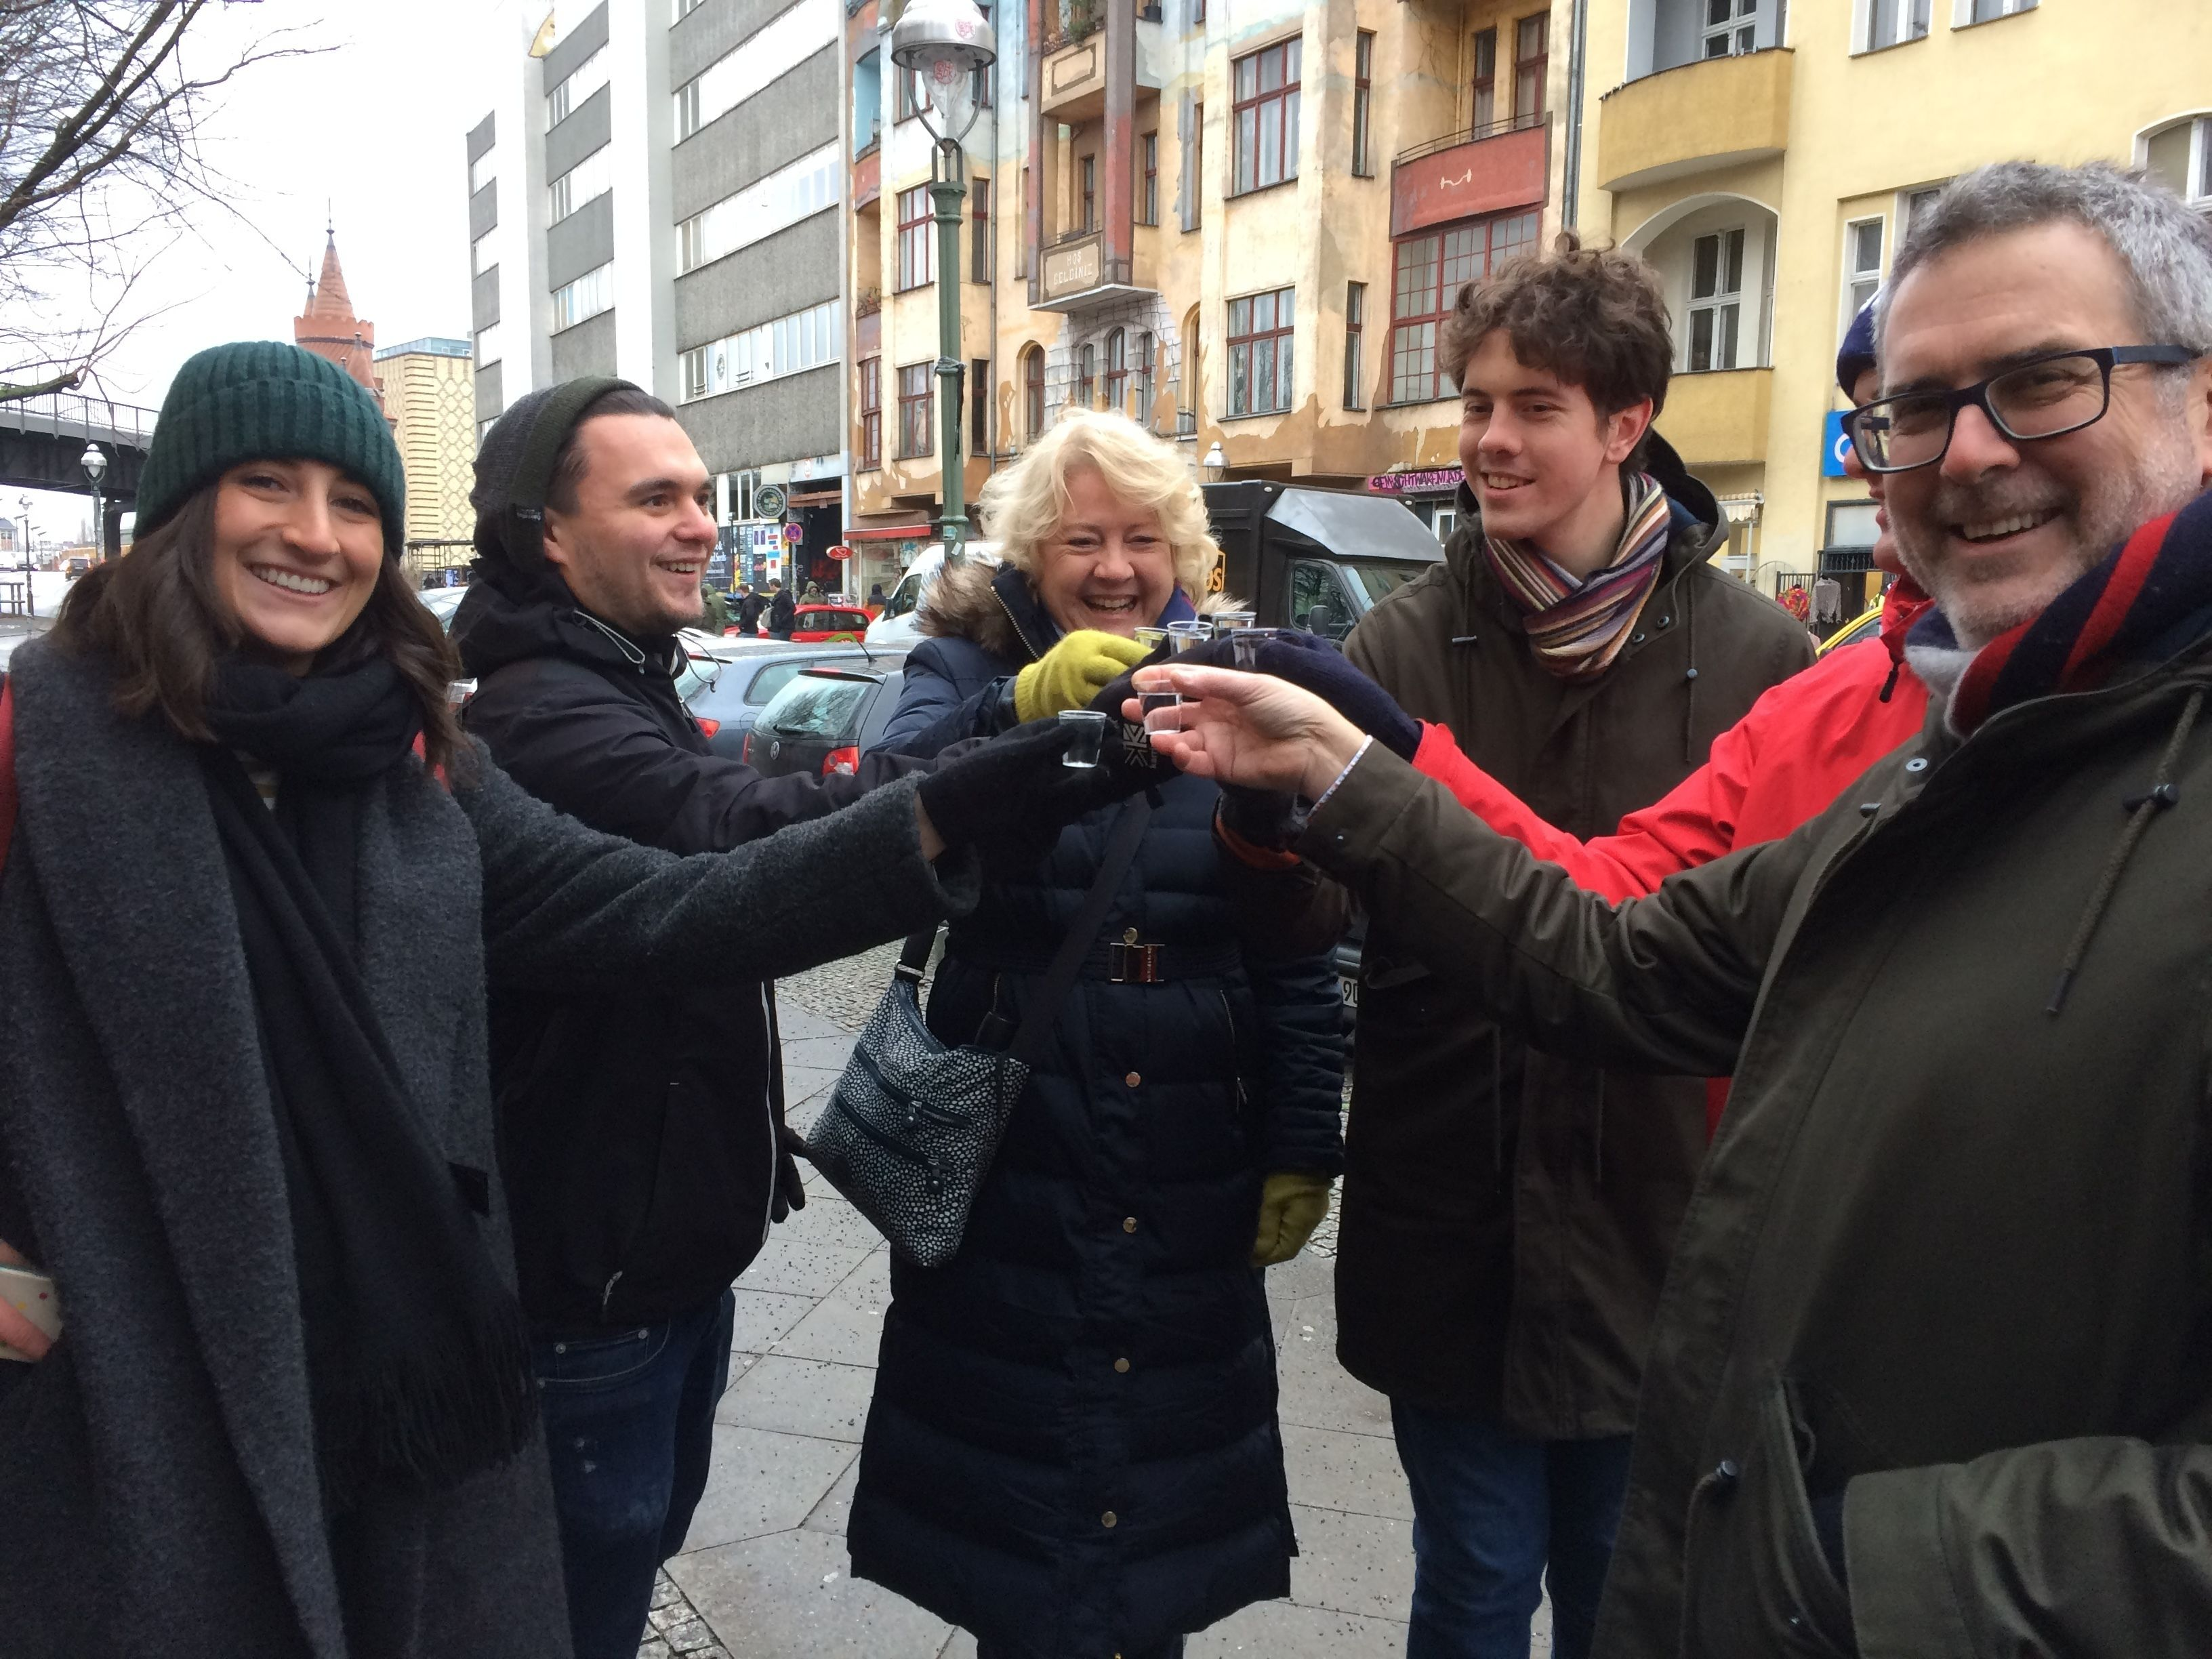 Group toasting with shots on a food tour in Berlin